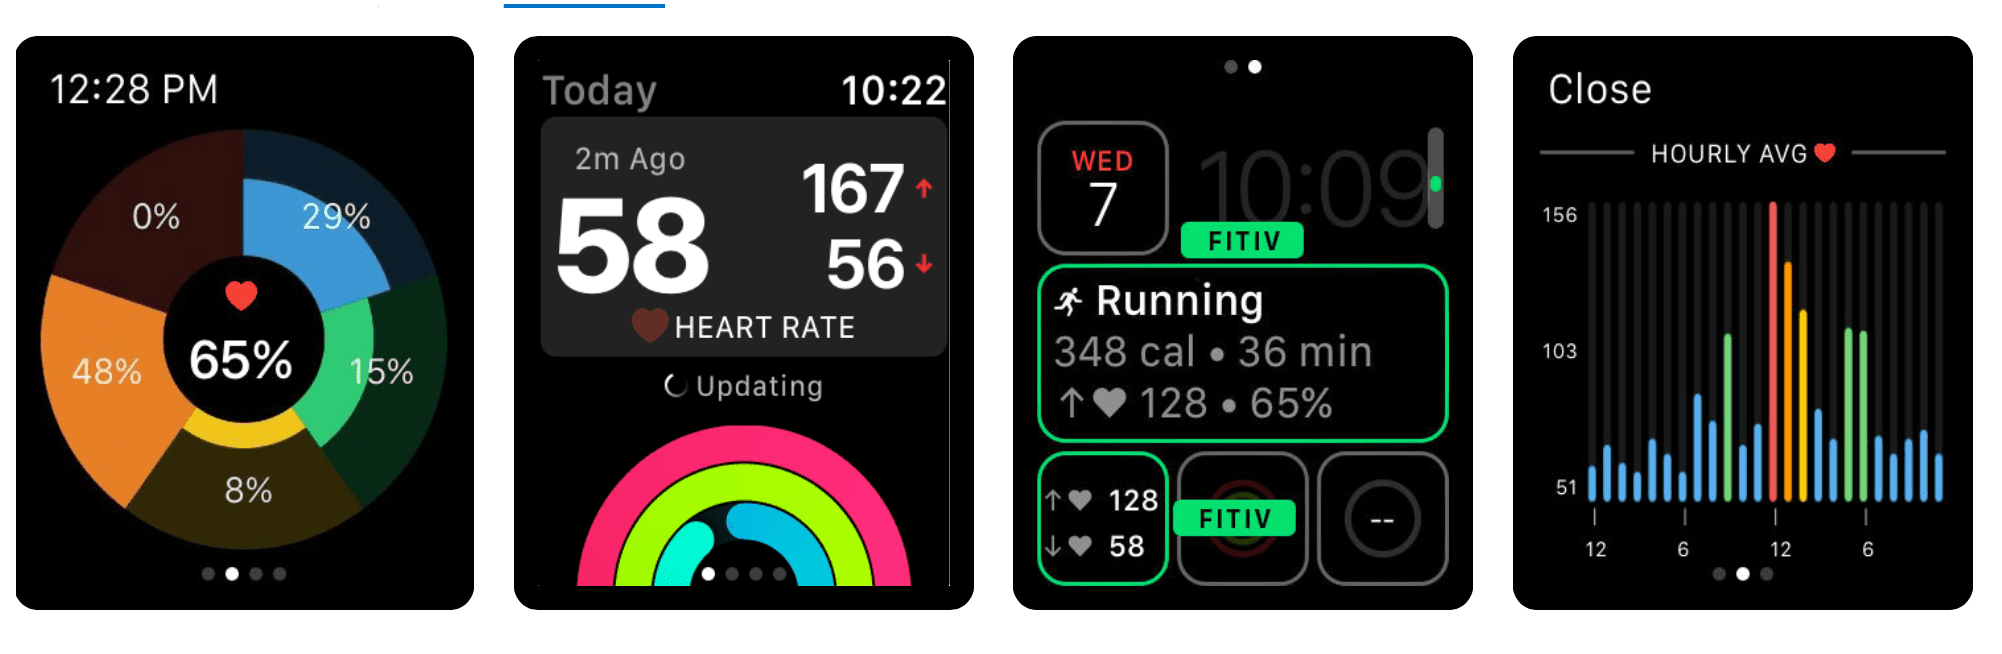 Fitiv Apple Watch complication